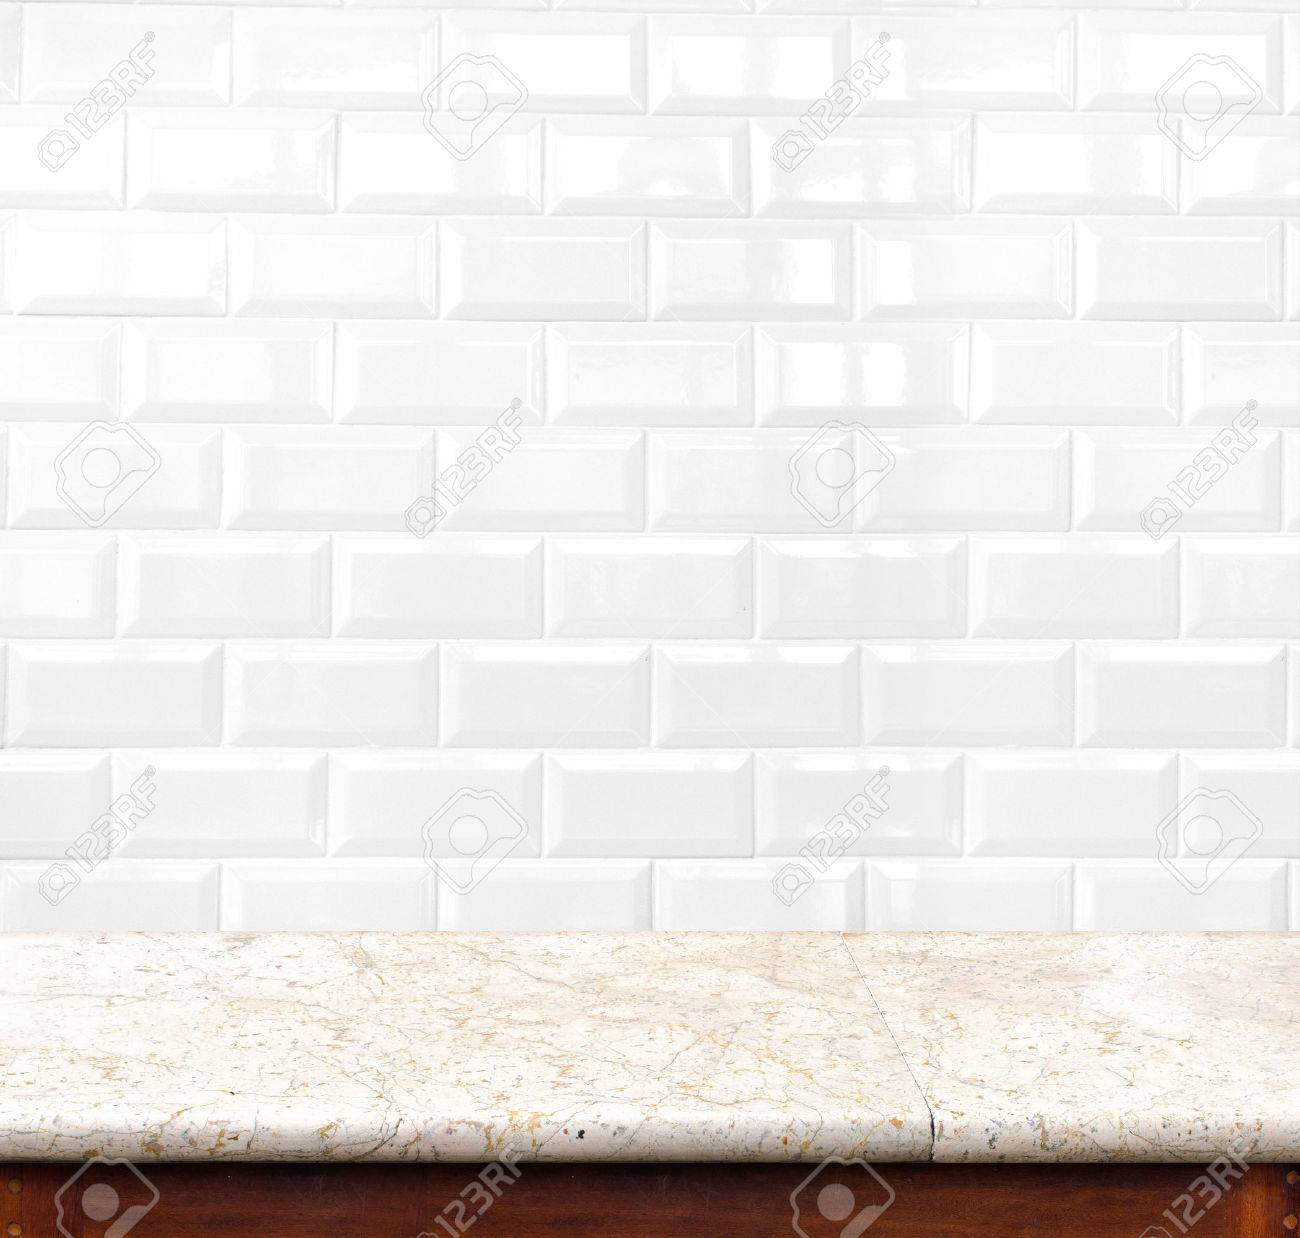 Empty marble table and ceramic tile brick wall in background empty marble table and ceramic tile brick wall in background product display template stock photo dailygadgetfo Gallery